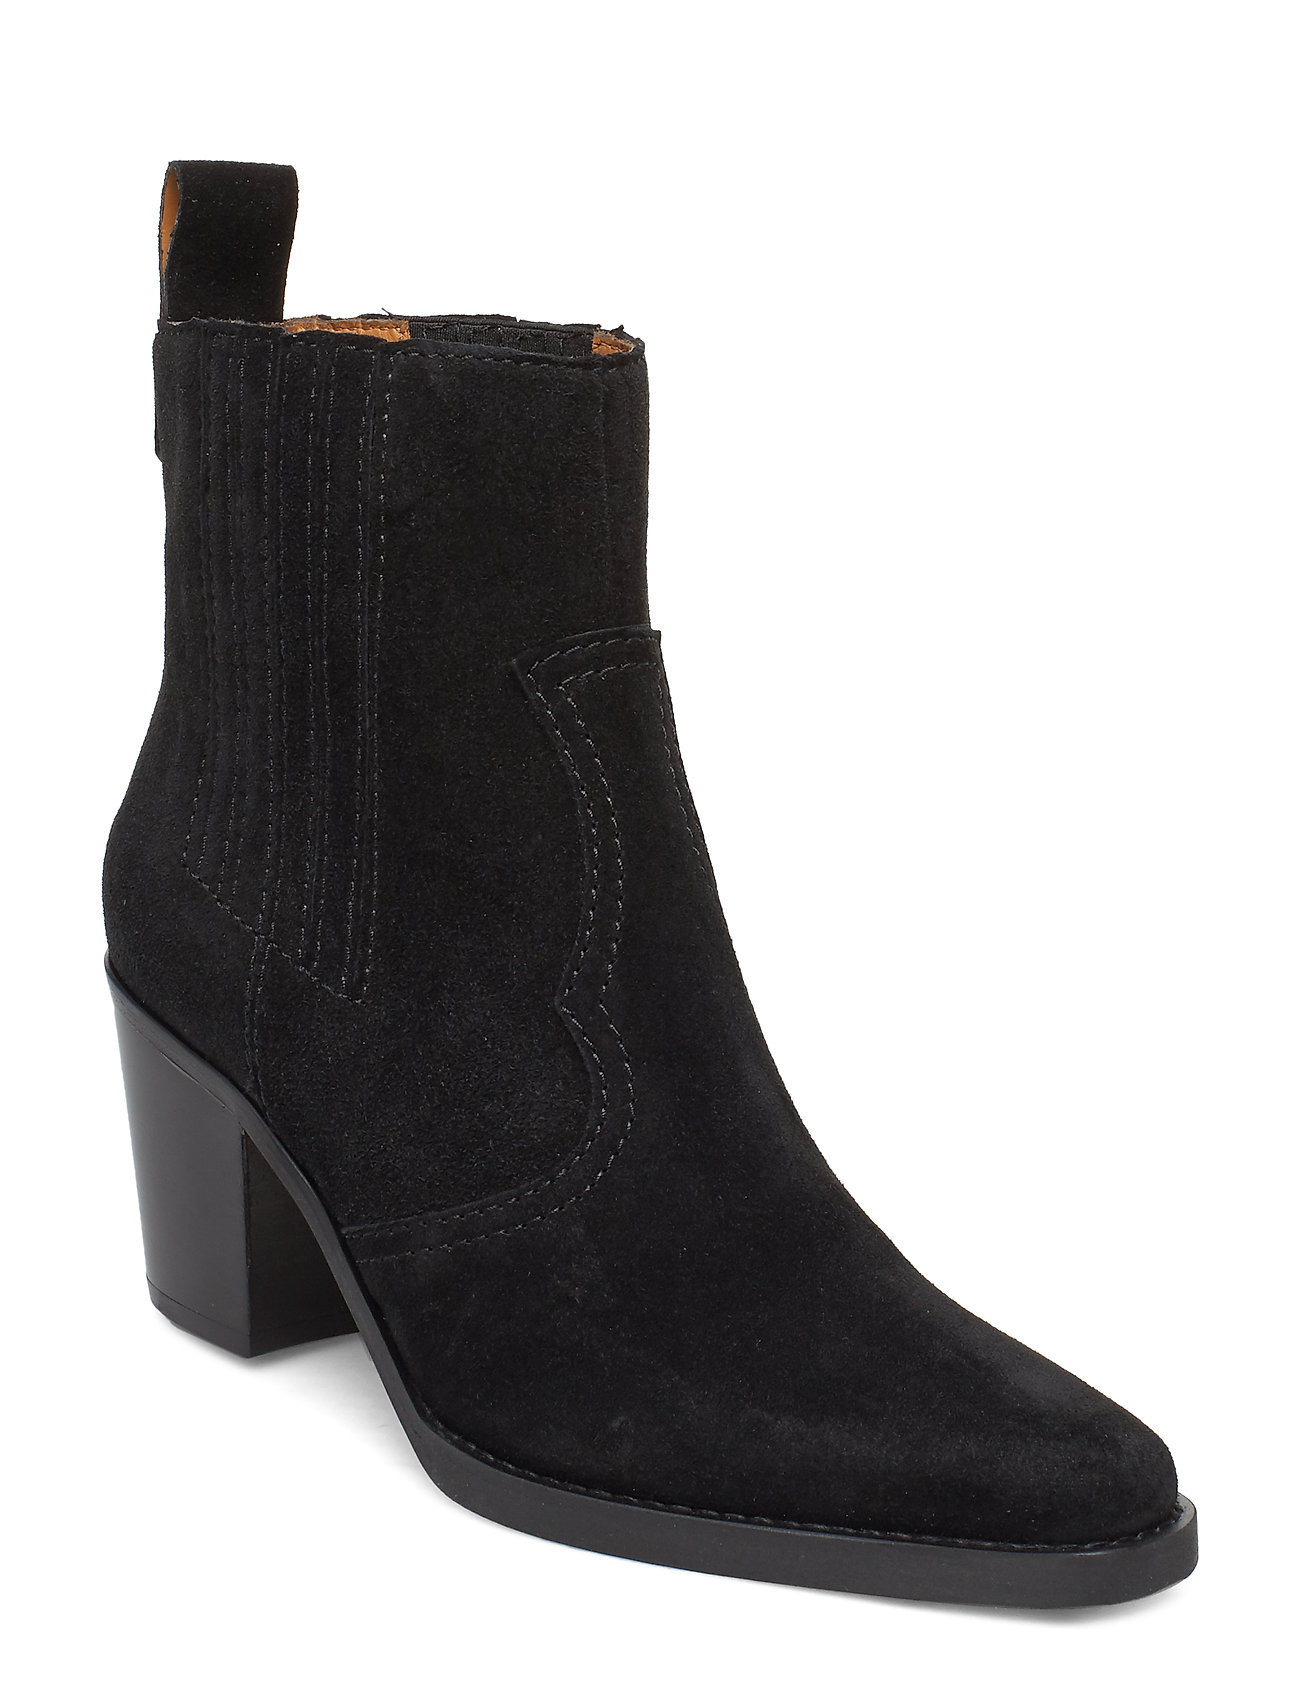 Image of Western Ankle Boots Shoes Boots Ankle Boots Ankle Boots With Heel Sort Ganni (3353812967)